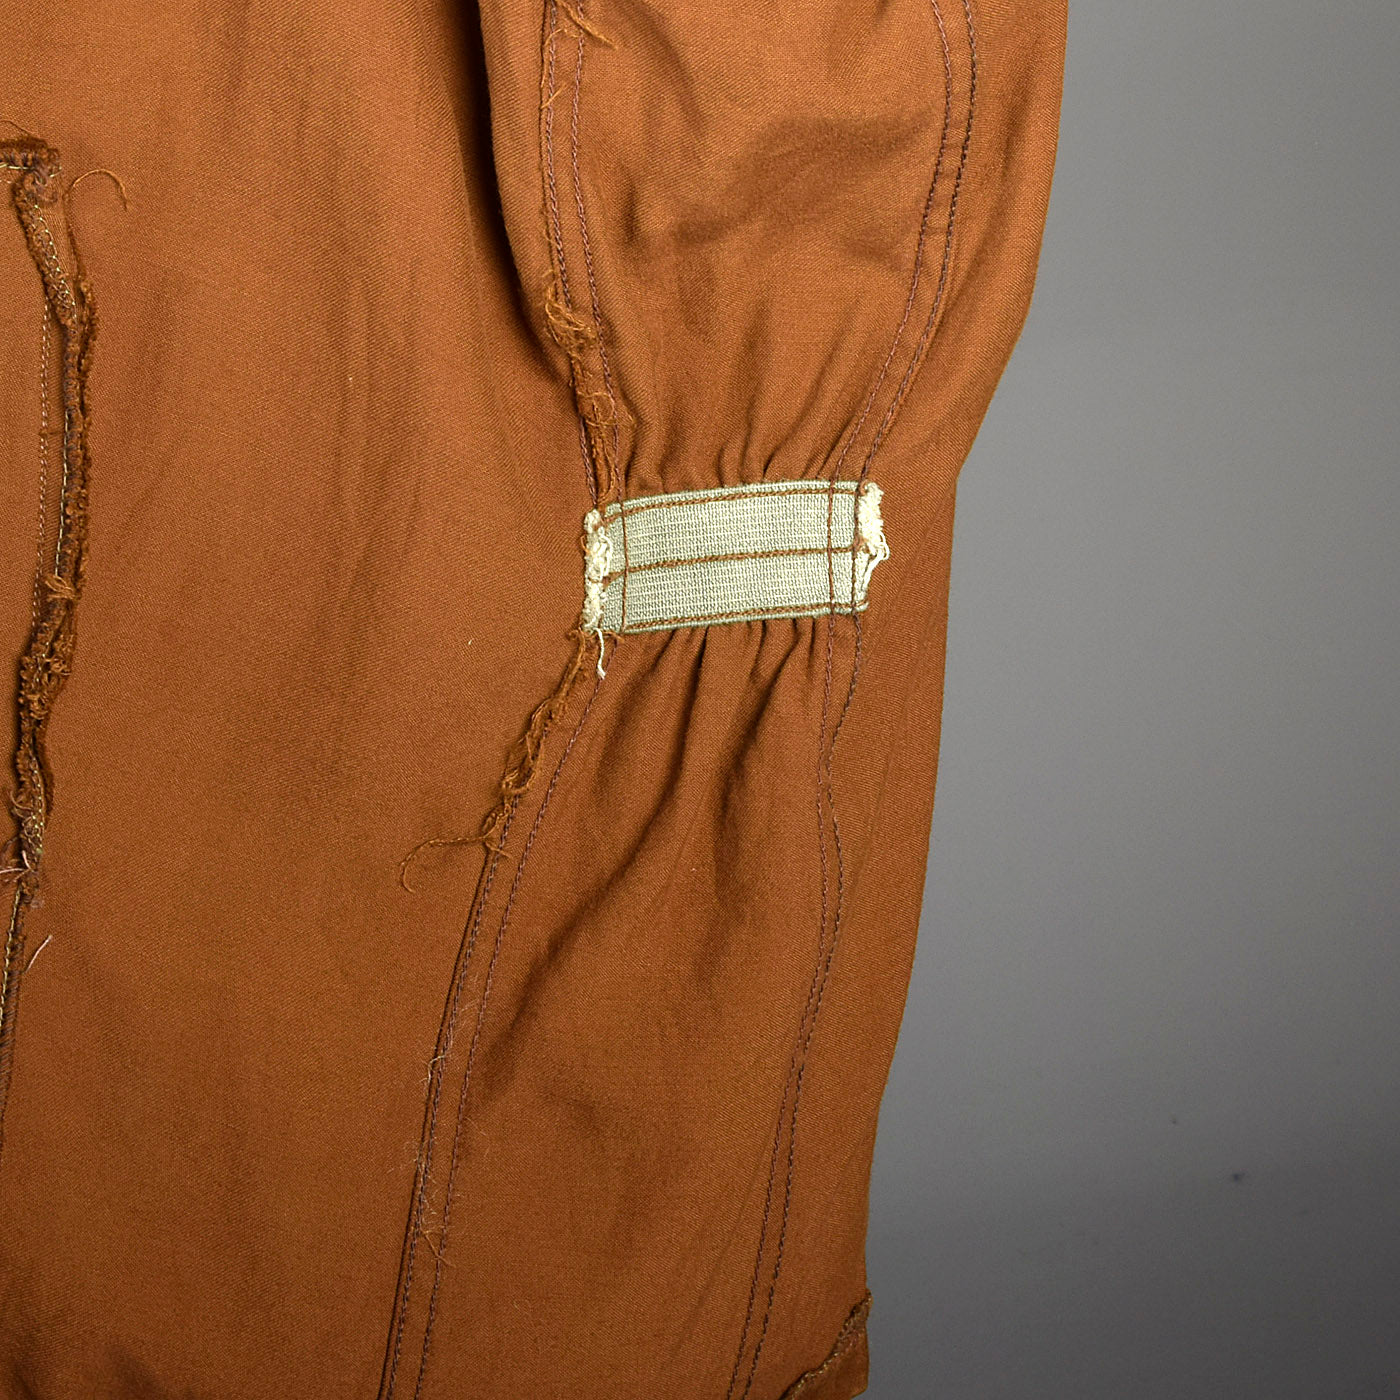 1950s Mens Gabardine Jacket with Metal Zip Front